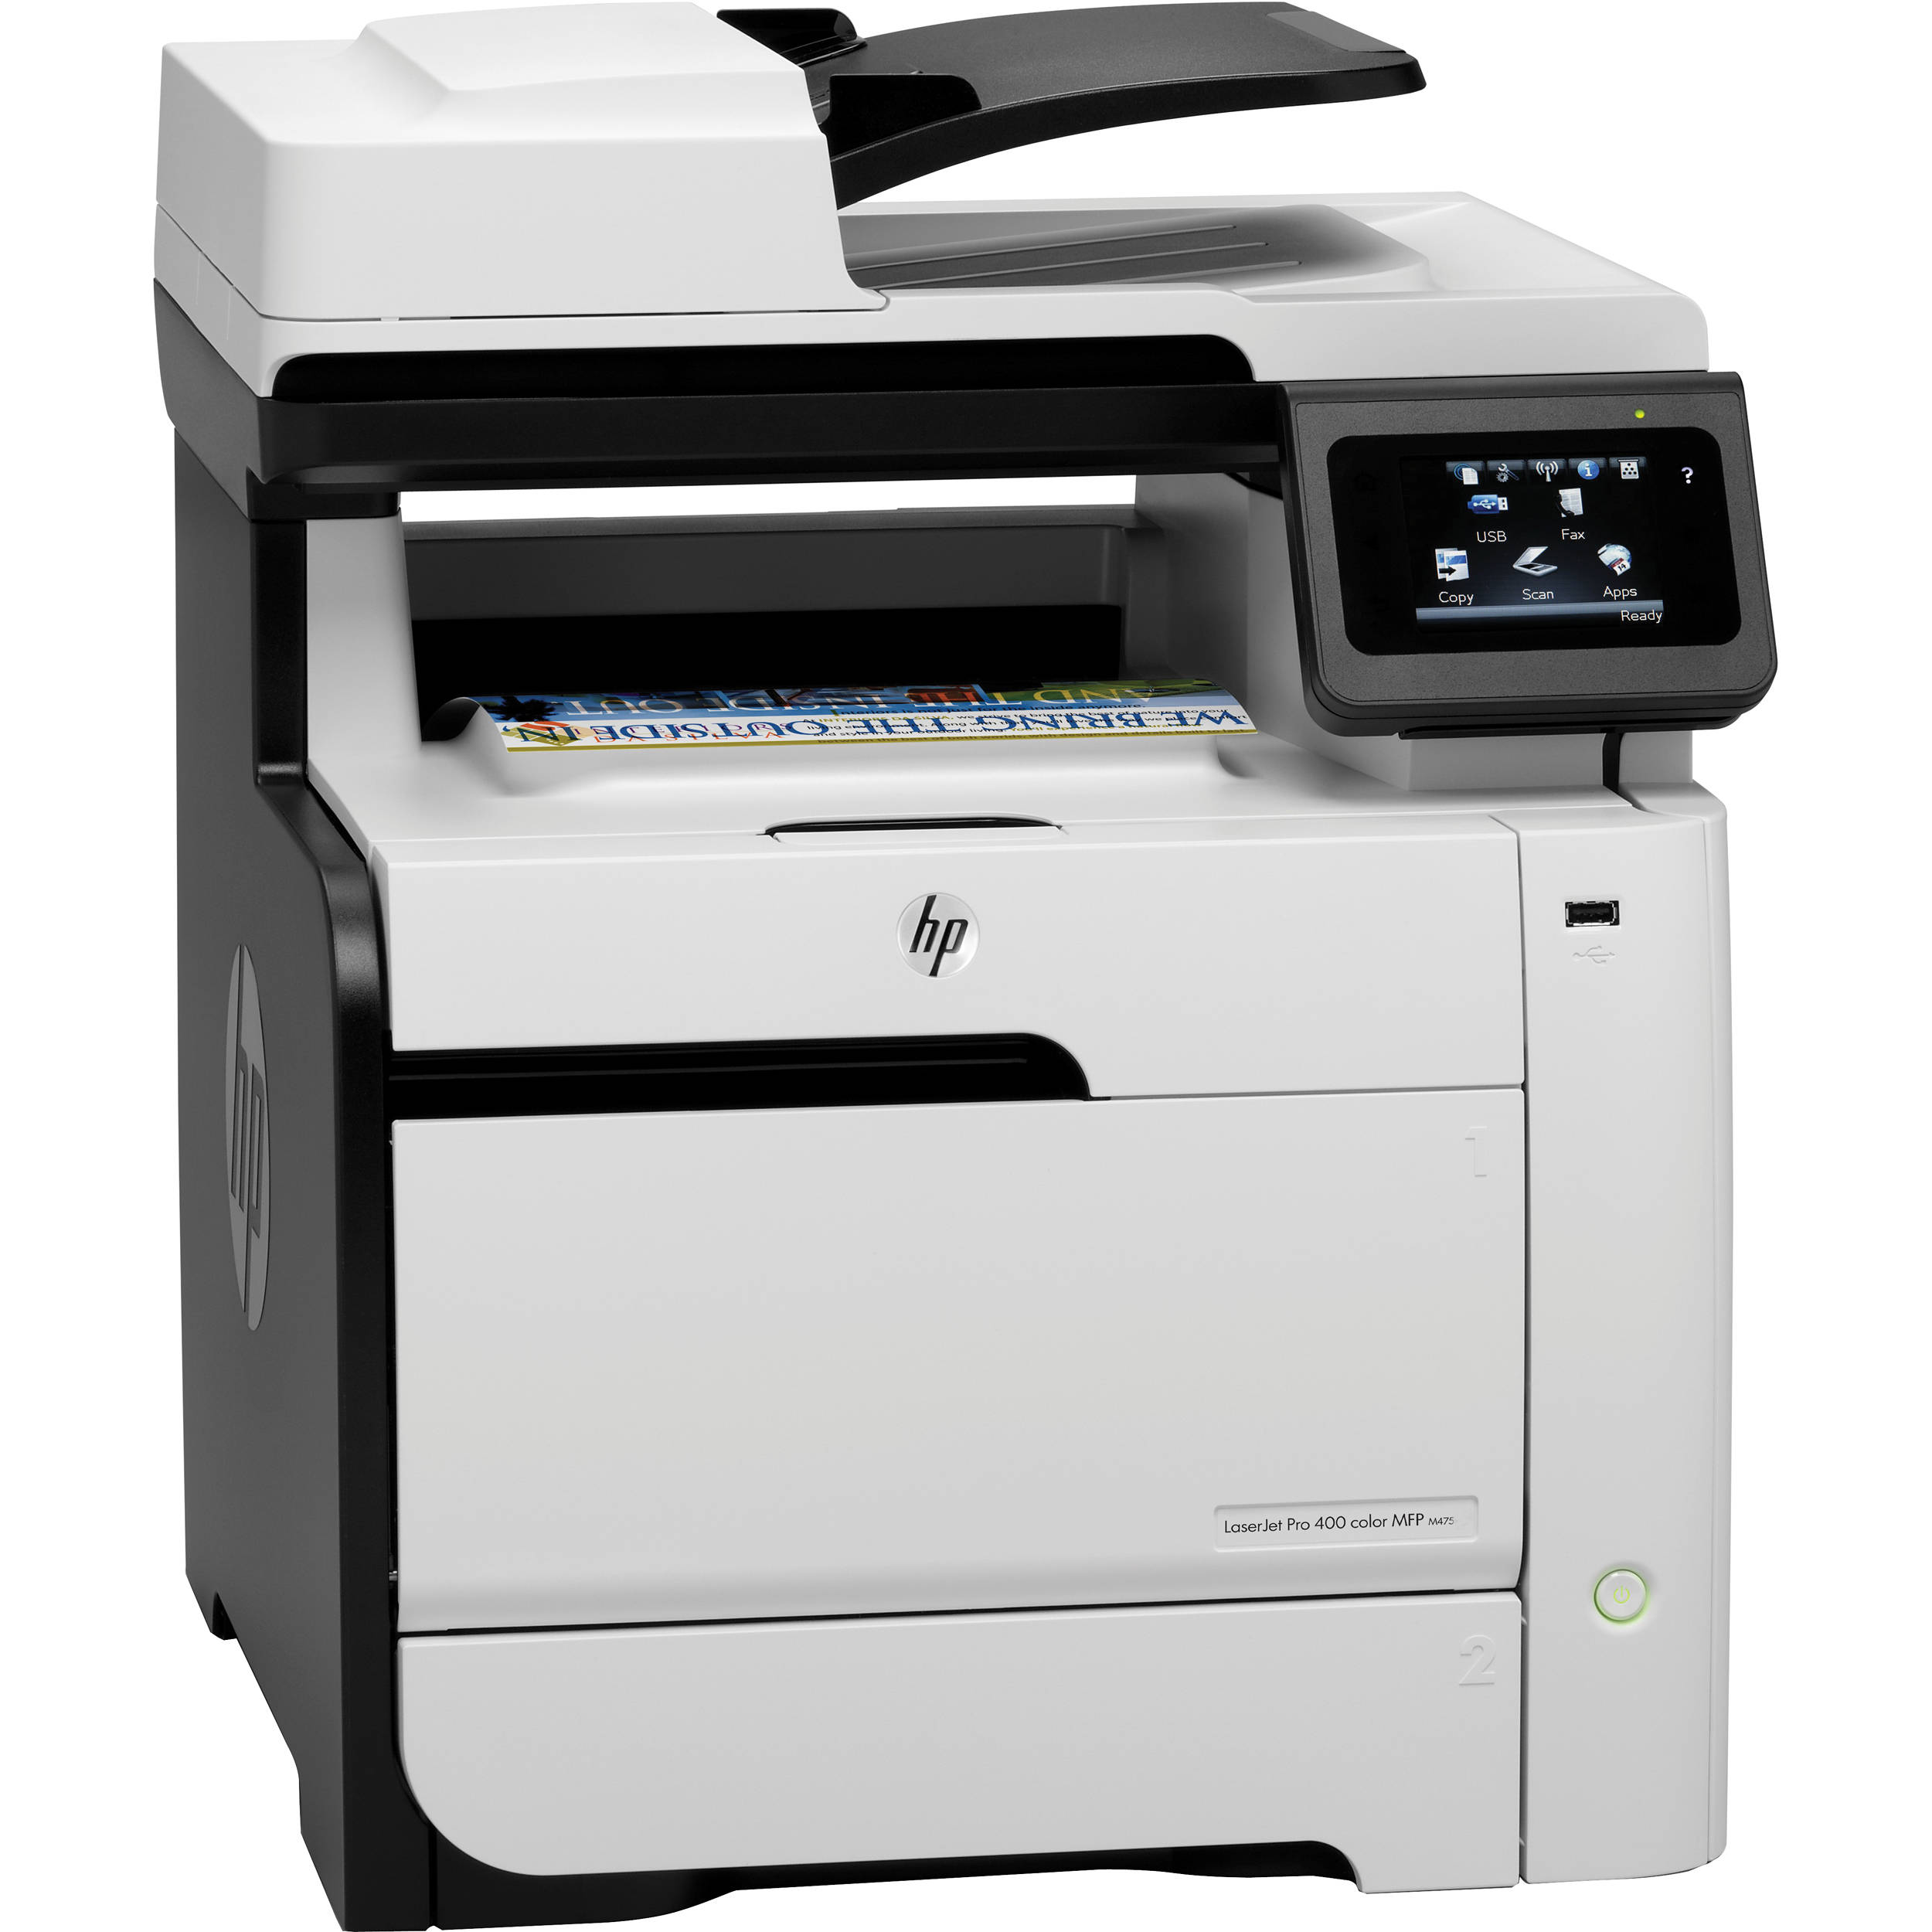 used hp laserjet pro 400 m475dw wireless color all in one ce864a. Black Bedroom Furniture Sets. Home Design Ideas